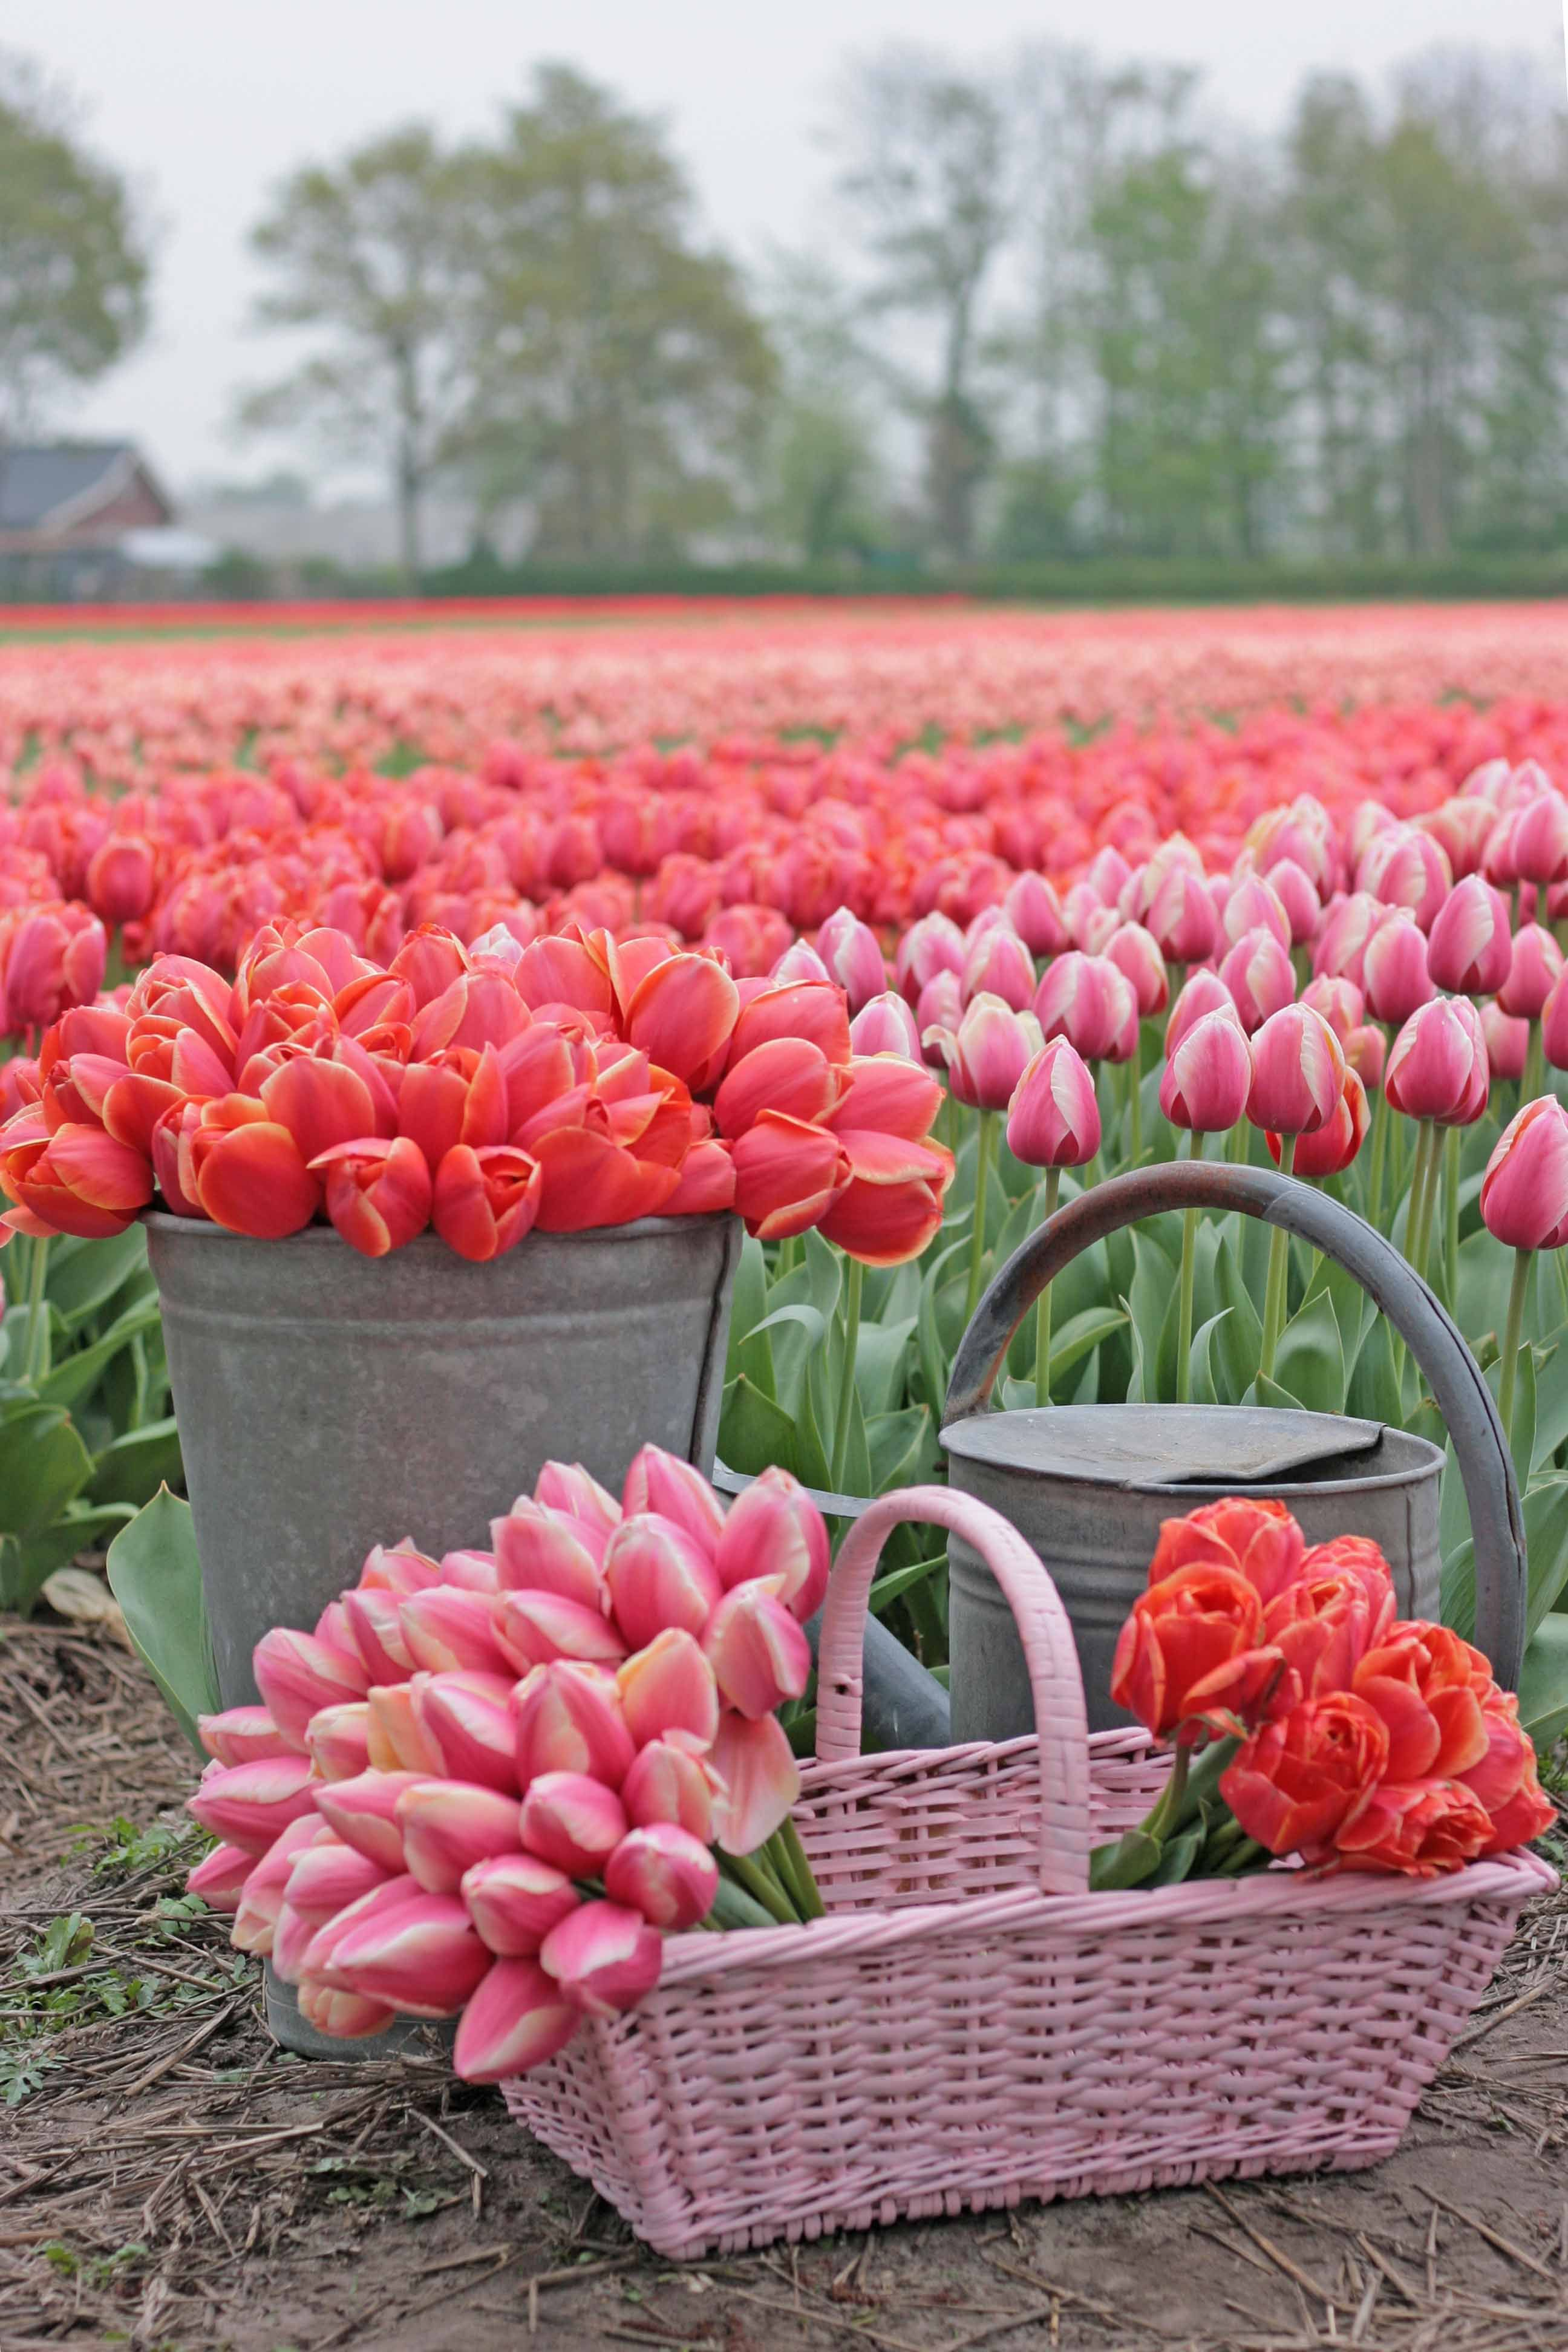 Endless Fields Of Tulips Plant Some Tulip Bulbs In Your Garden And You Will Enjoy A Flowery Spring Tulips Add So Mu In 2020 Planting Tulips Flower Farm Tulips Garden